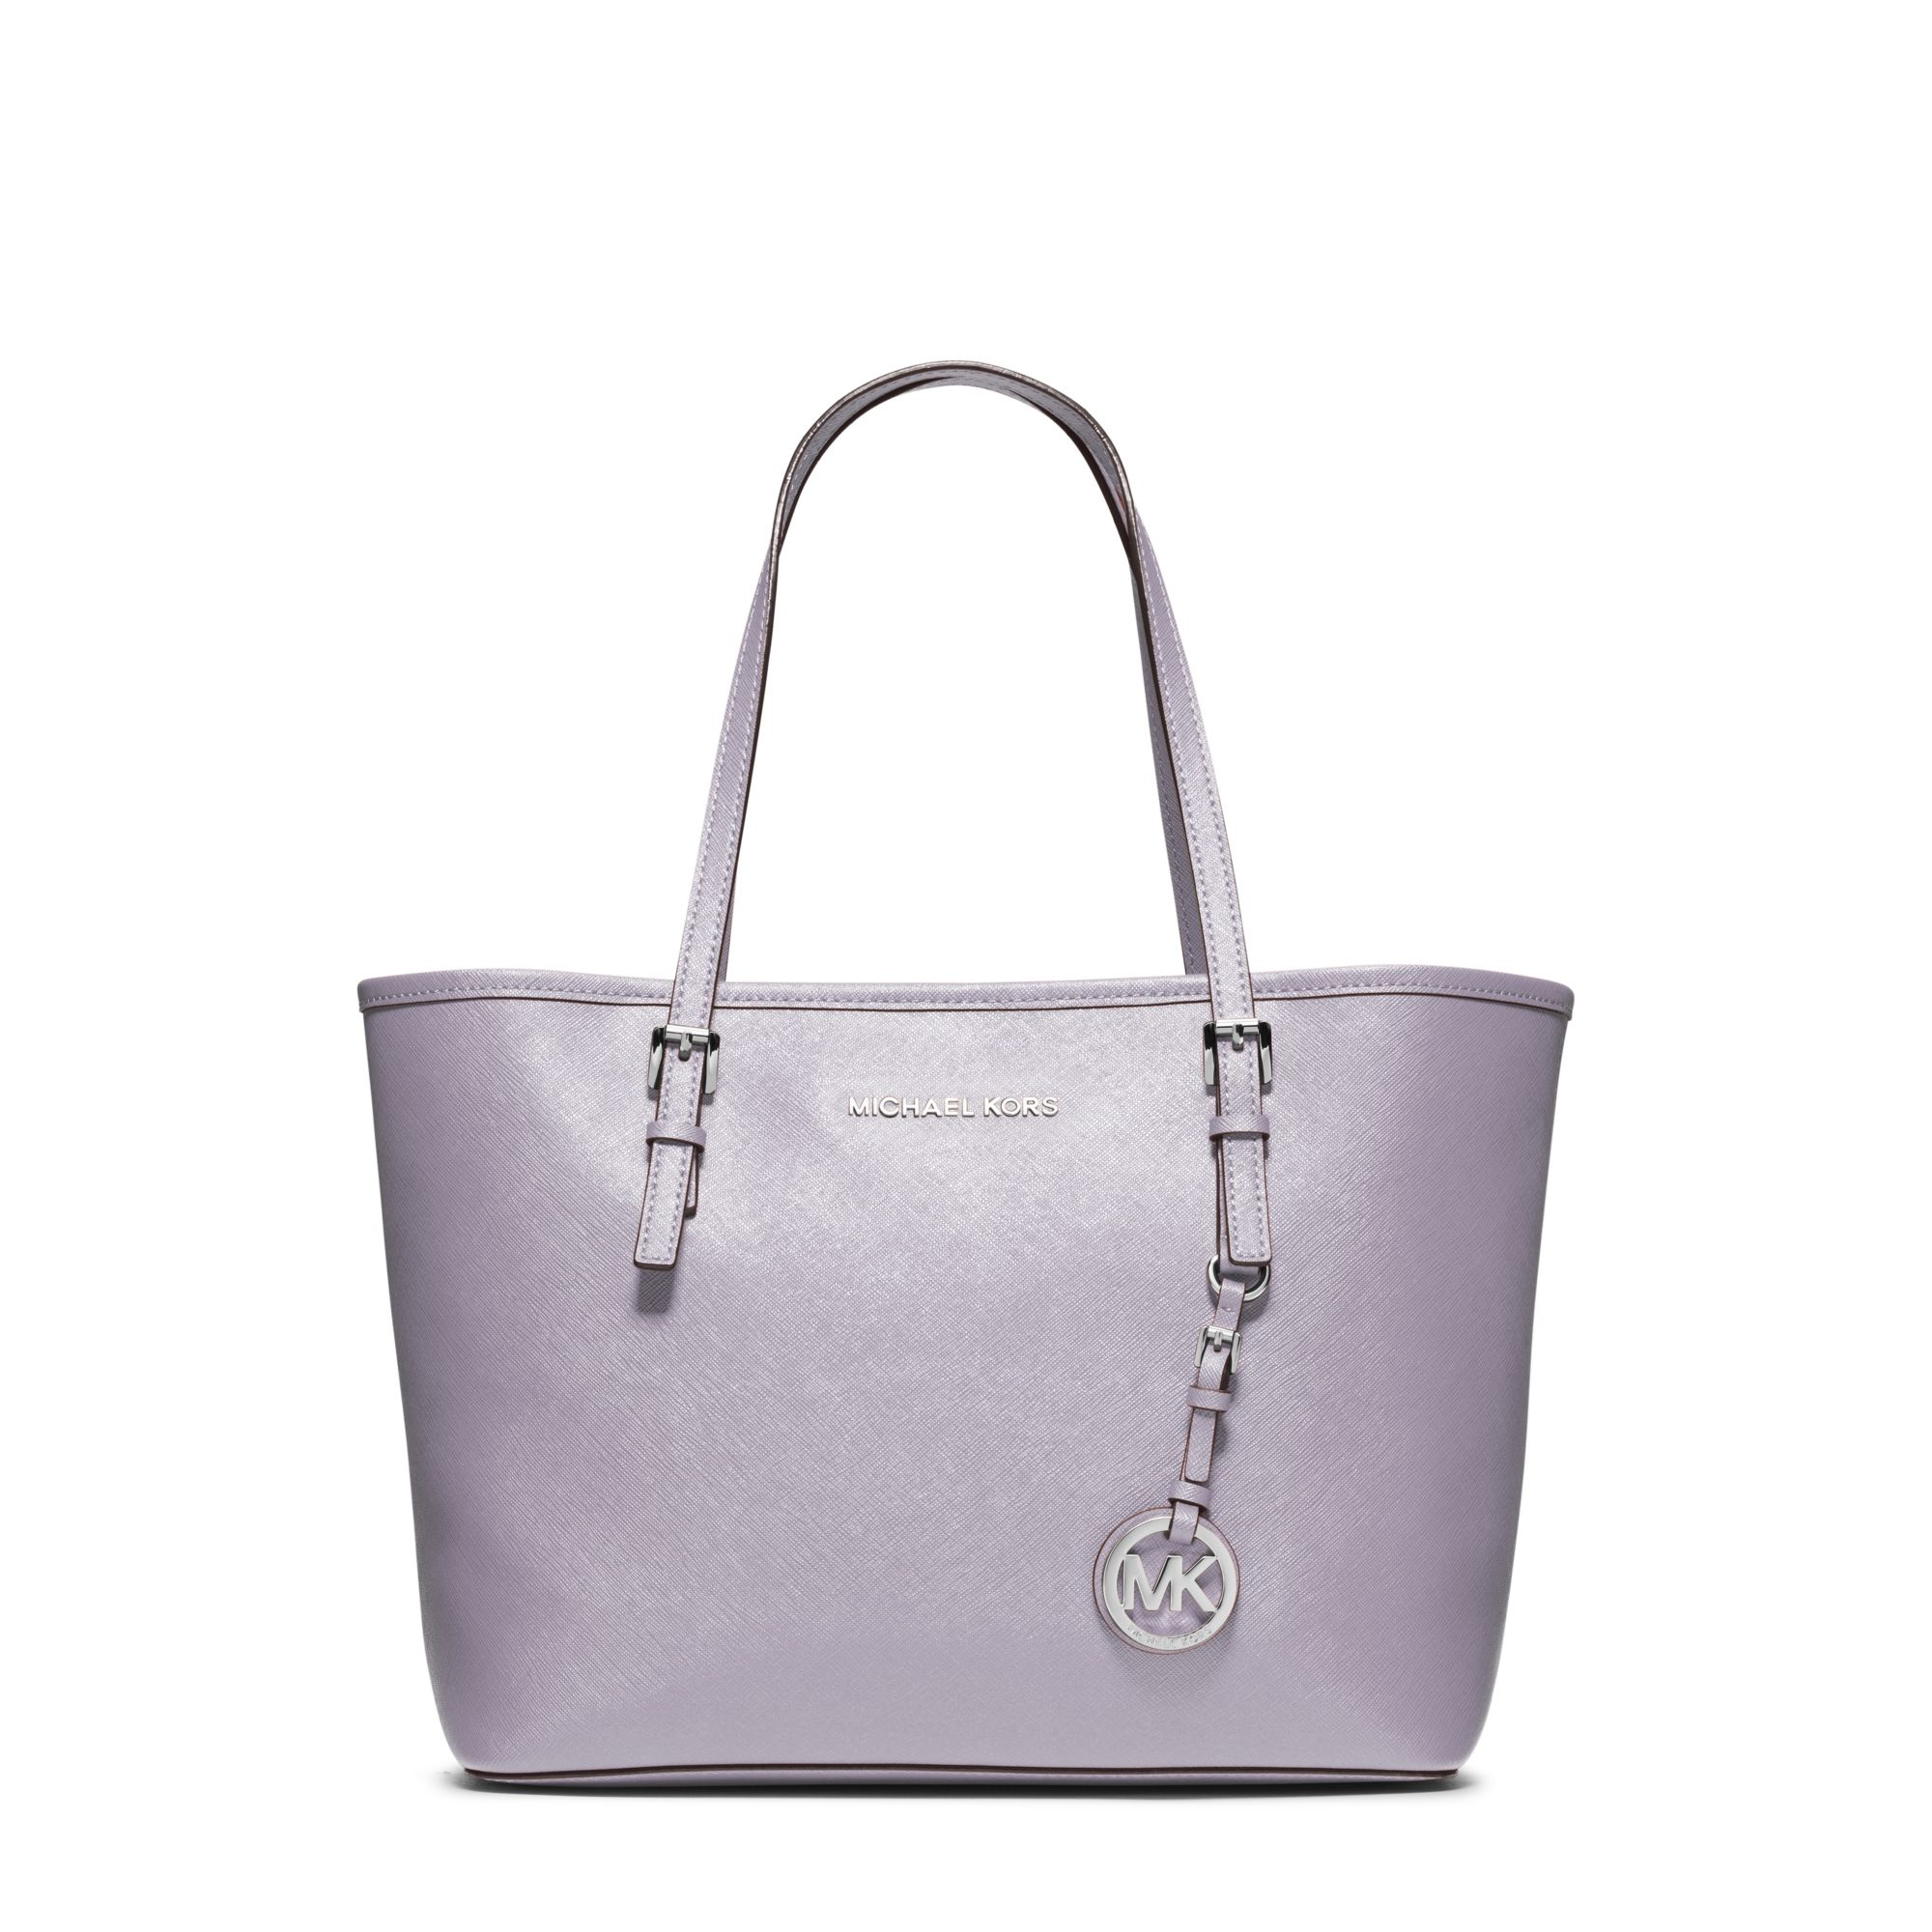 890c7eb4f748 Michael Kors Jet Set Travel Small Saffiano Leather Tote in Purple - Lyst